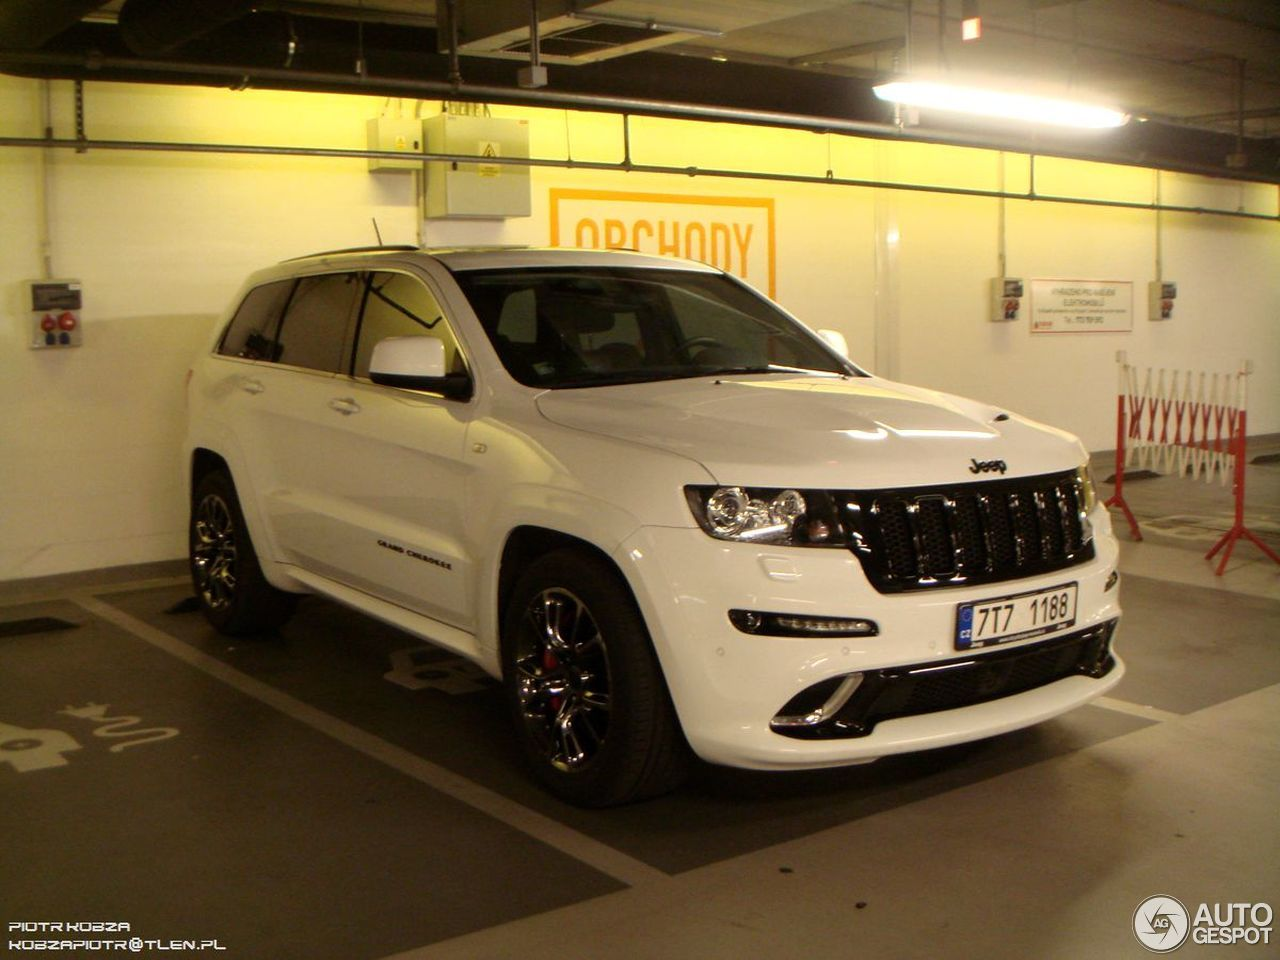 Jeep Grand Cherokee SRT 8 Limited Edition 17 June 2016